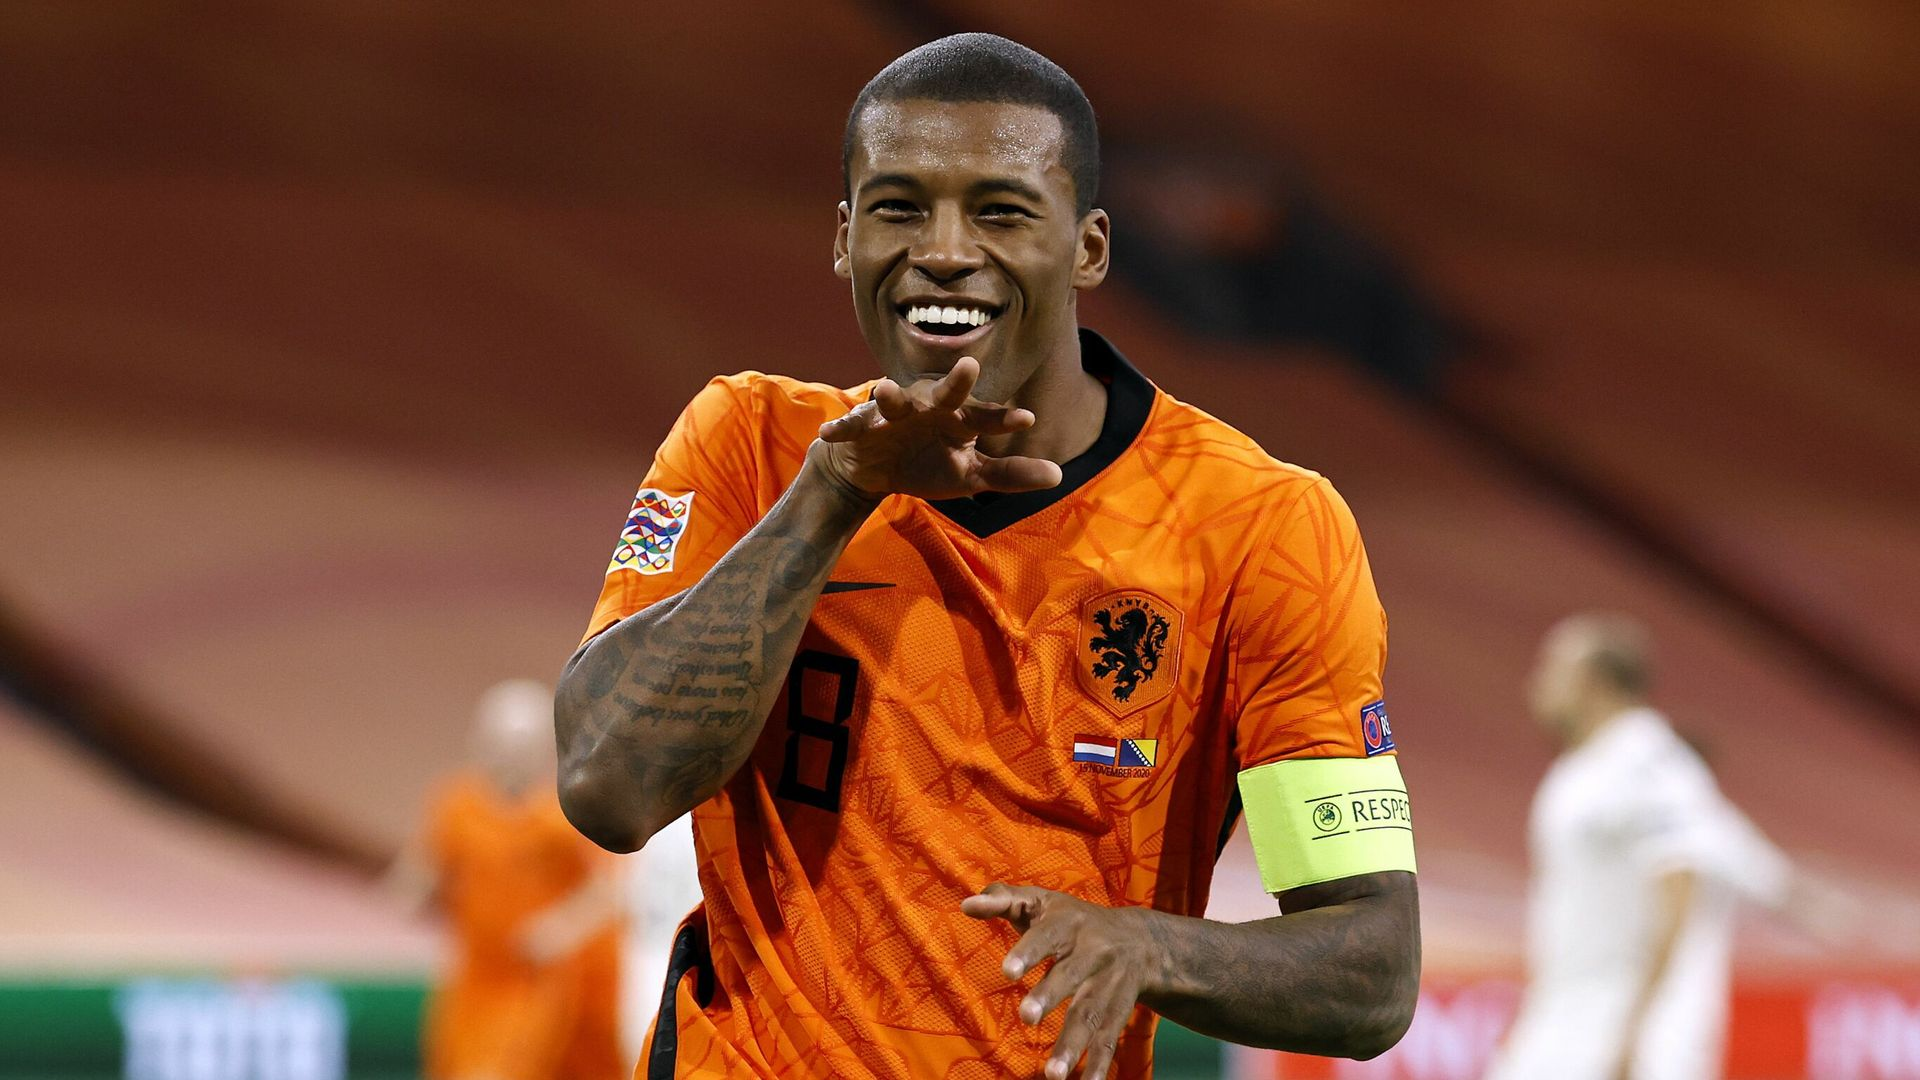 Nations League: Wijnaldum stars for Netherlands